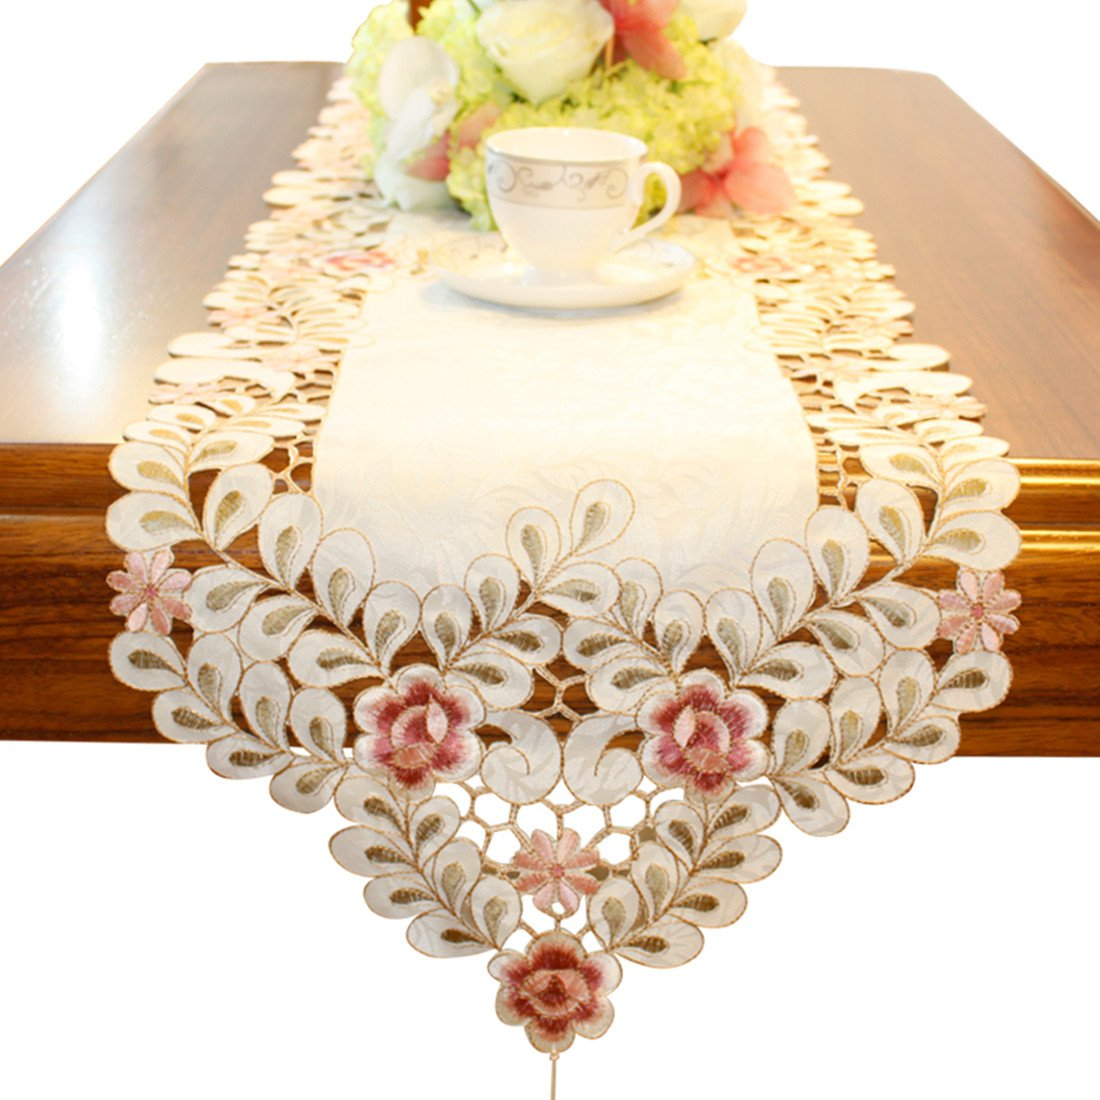 Pink flower embroidered hemstitch easter table runner tapestry 84 inch approx by JH table runner (Image #1)